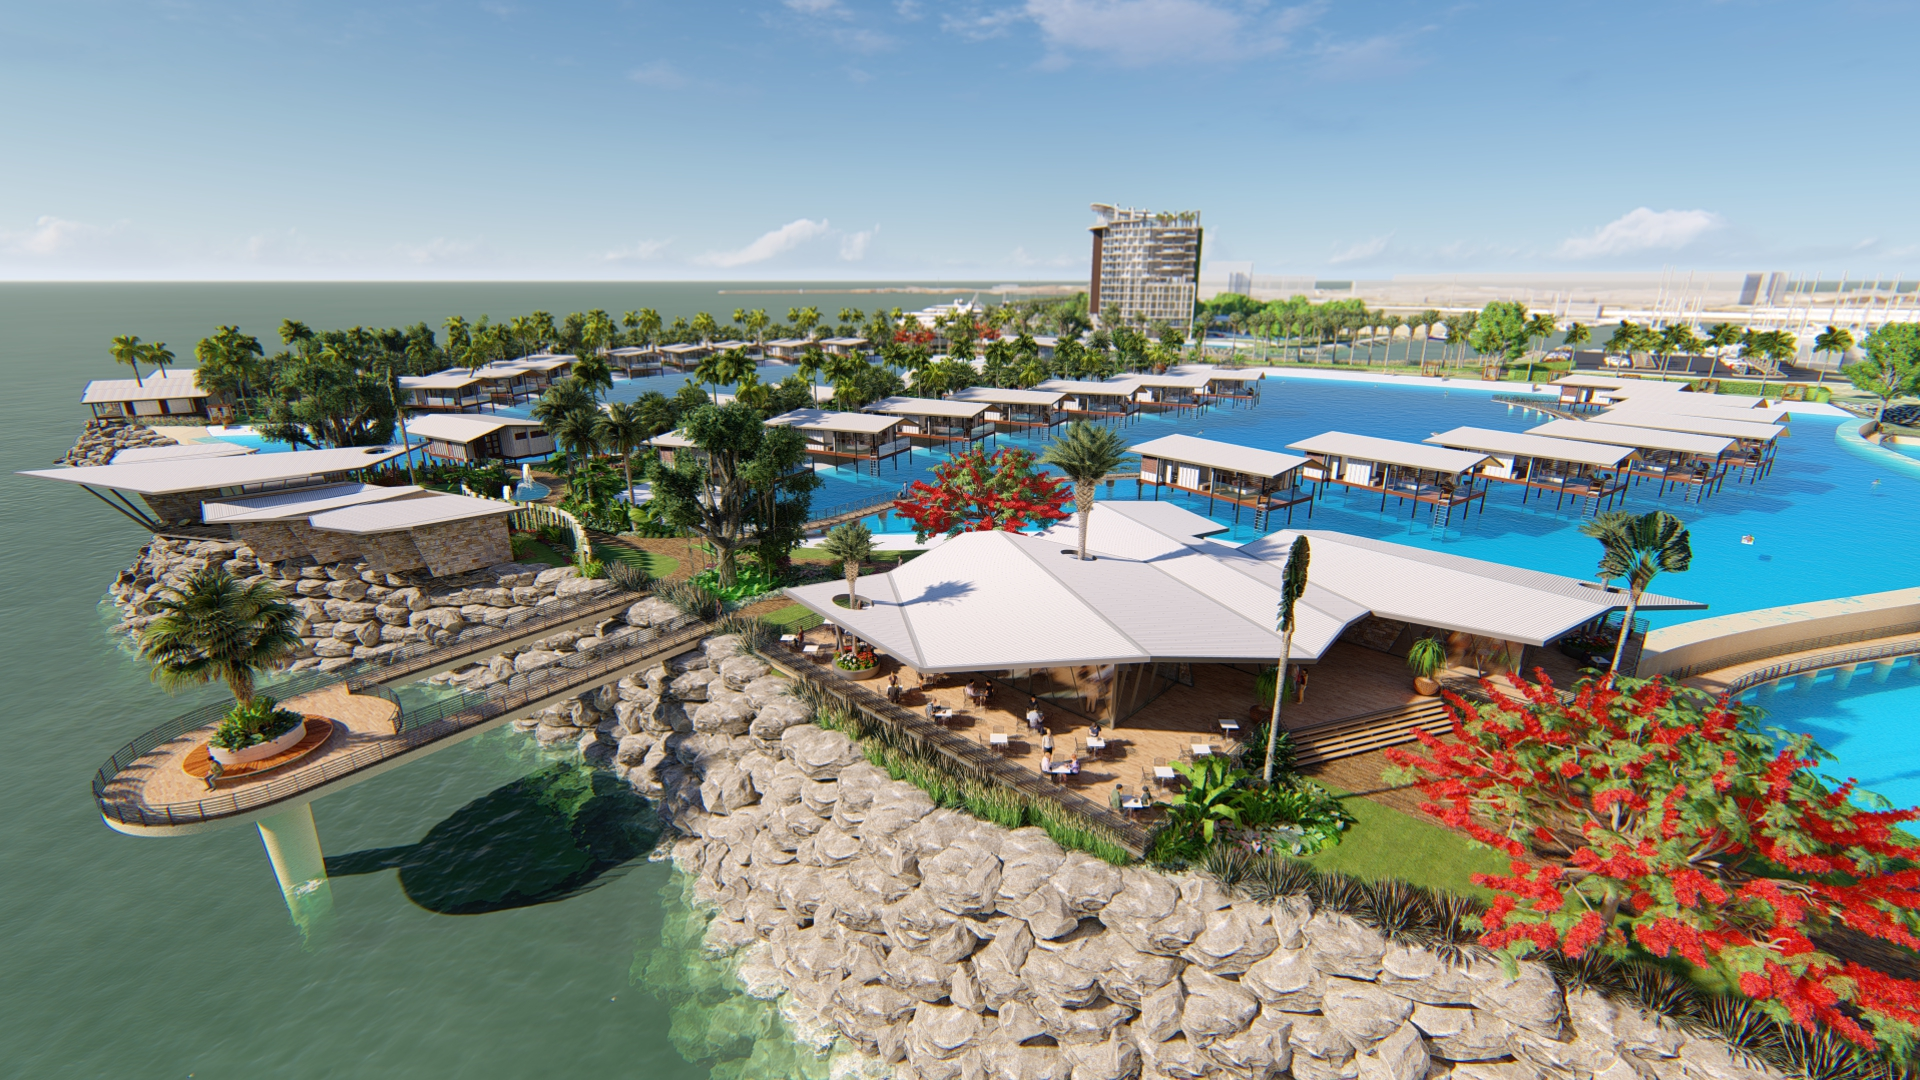 6-star lagoon resort concept